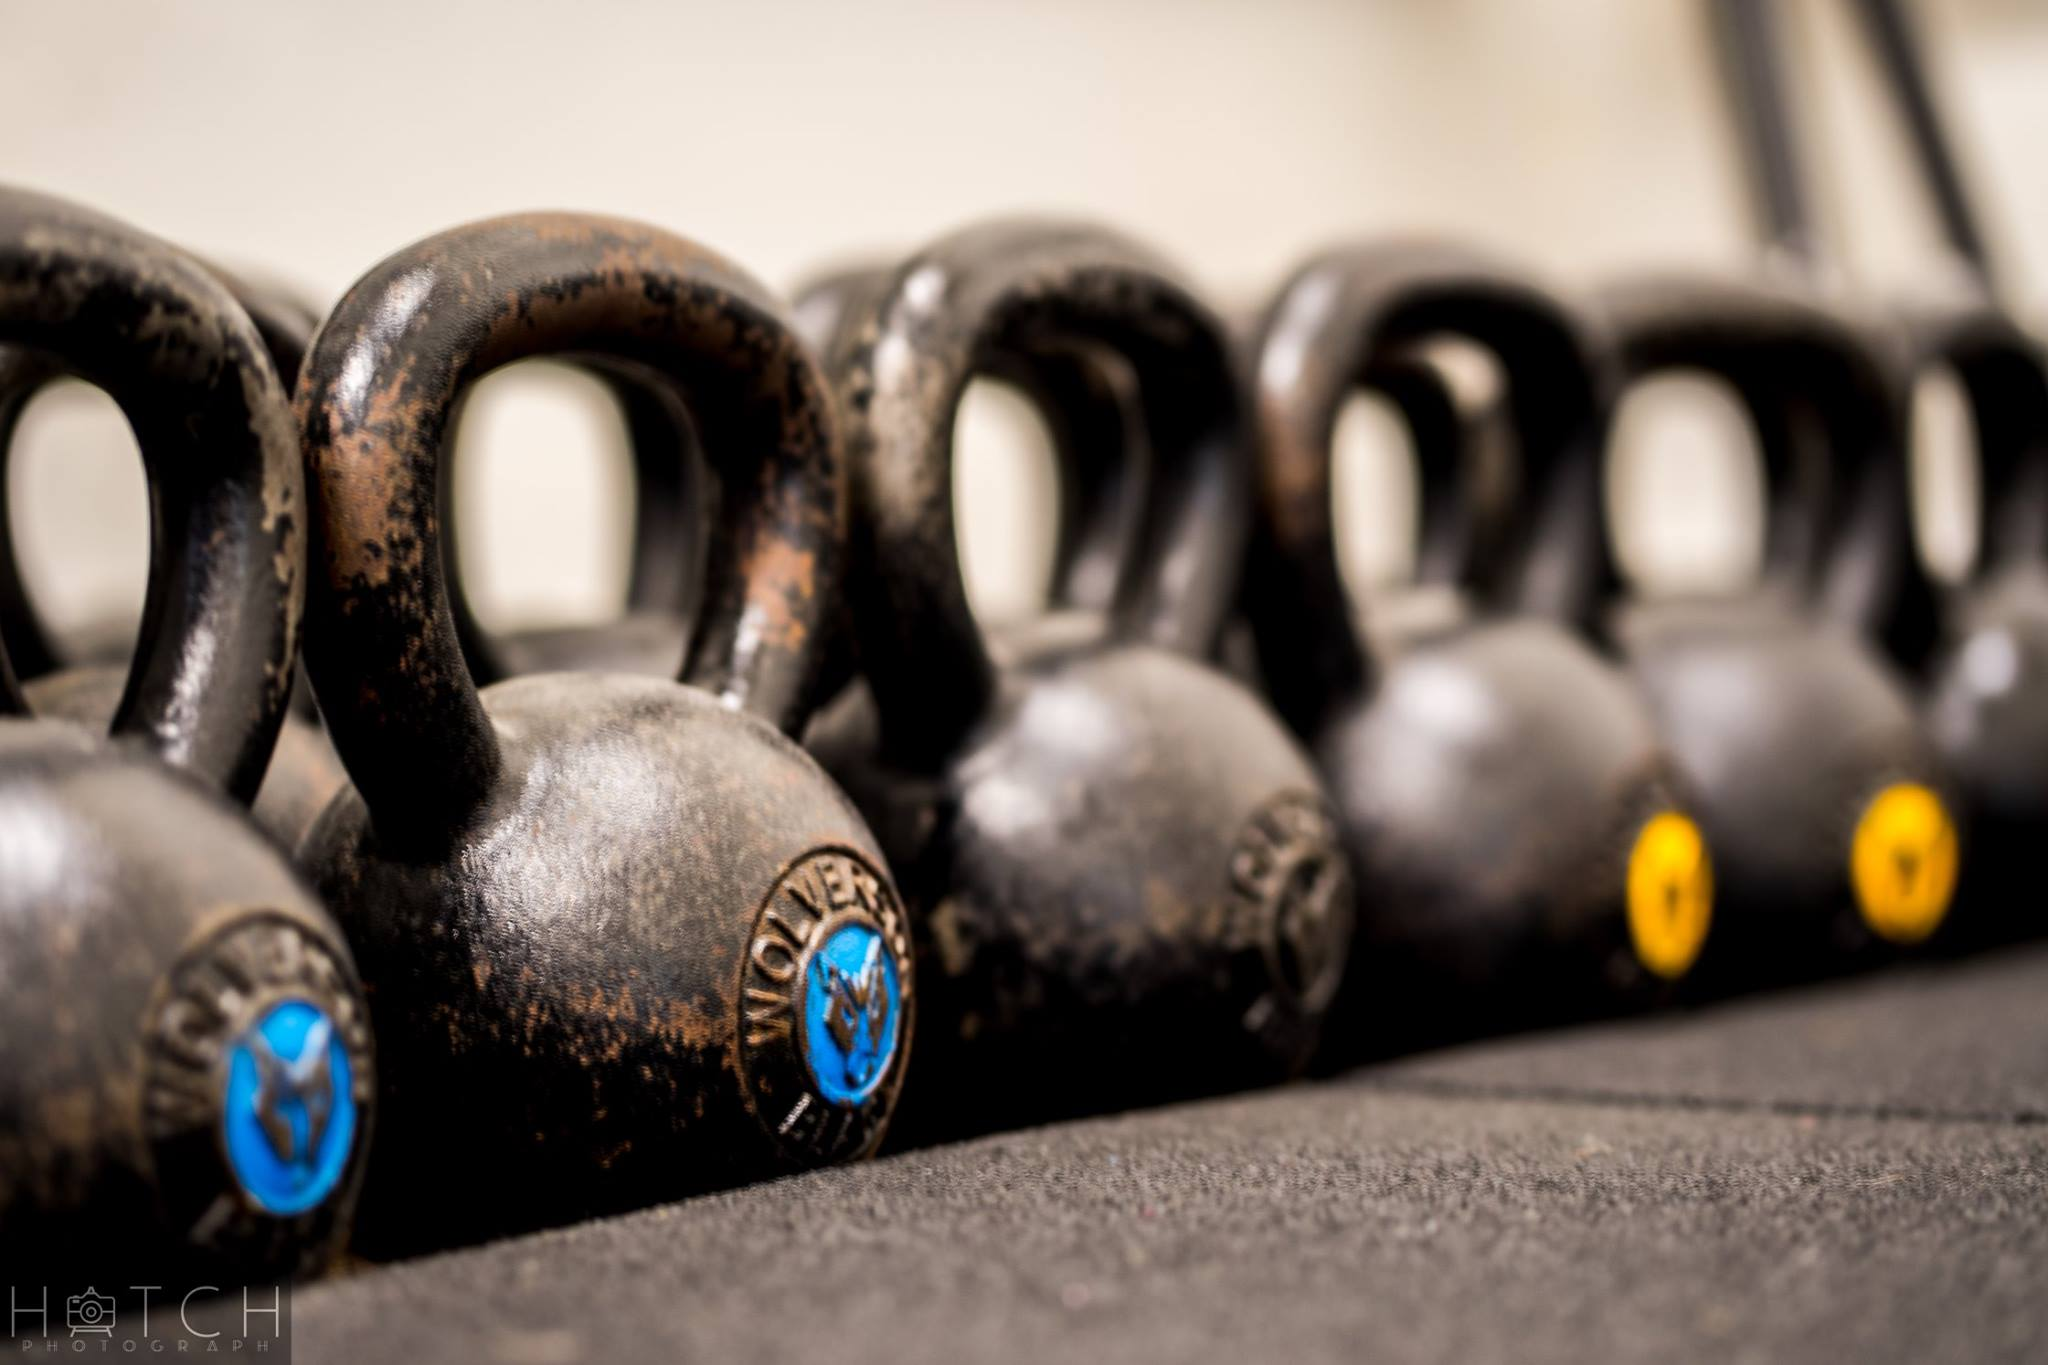 Kettlebell the King of iron